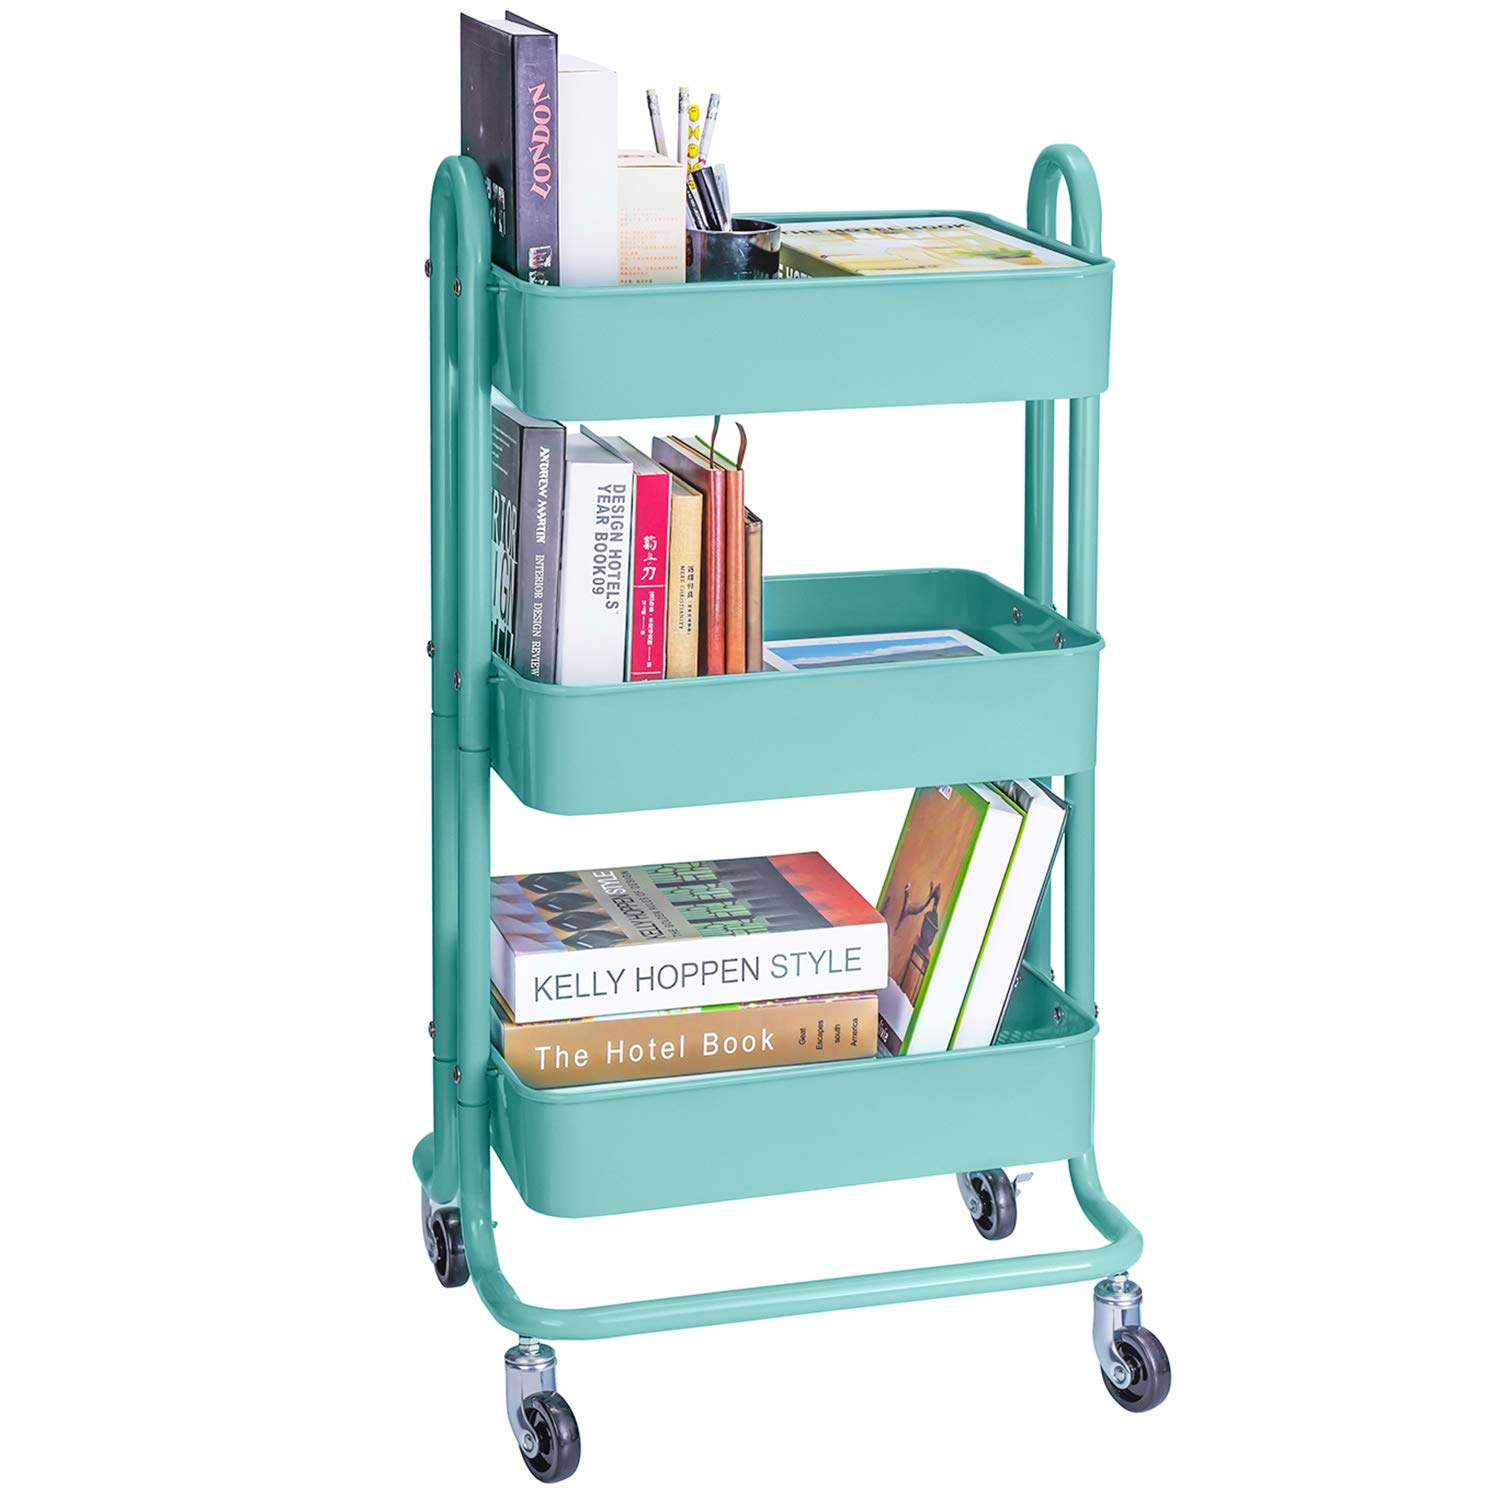 3-Tier Metal Rolling Utility Cart Heavy Duty Mobile Storage Organizer Craft Cart, Turquoise